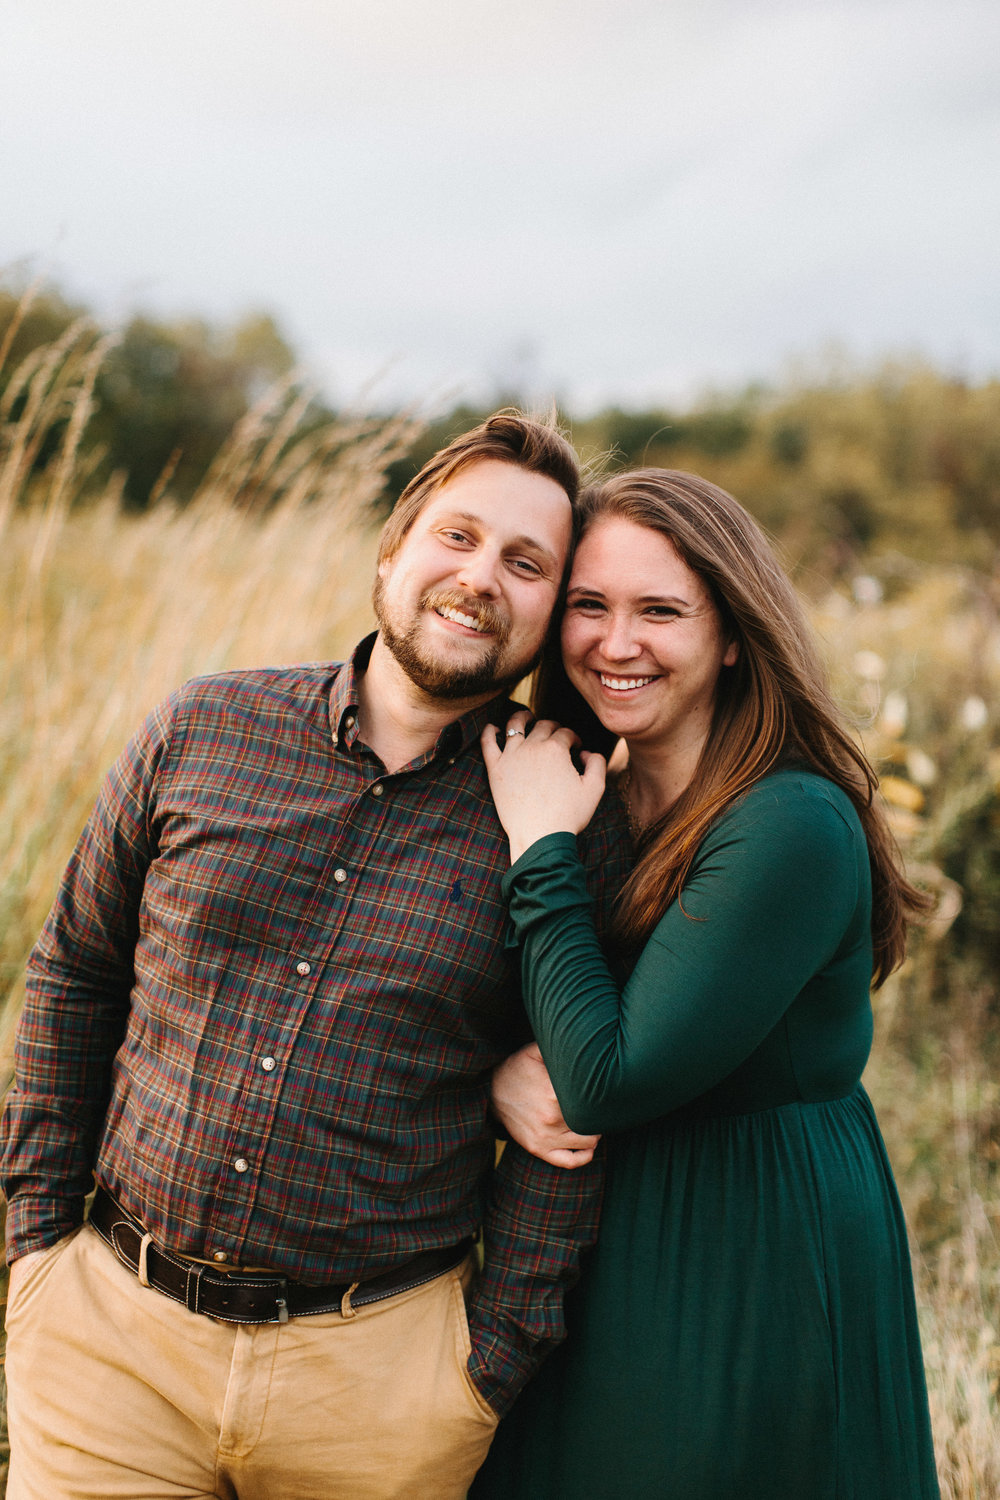 iowa_city_engagement_adventure_prairie_graduate_at_home_dog_couples_downtown_wilsons_orchard_1226.jpg